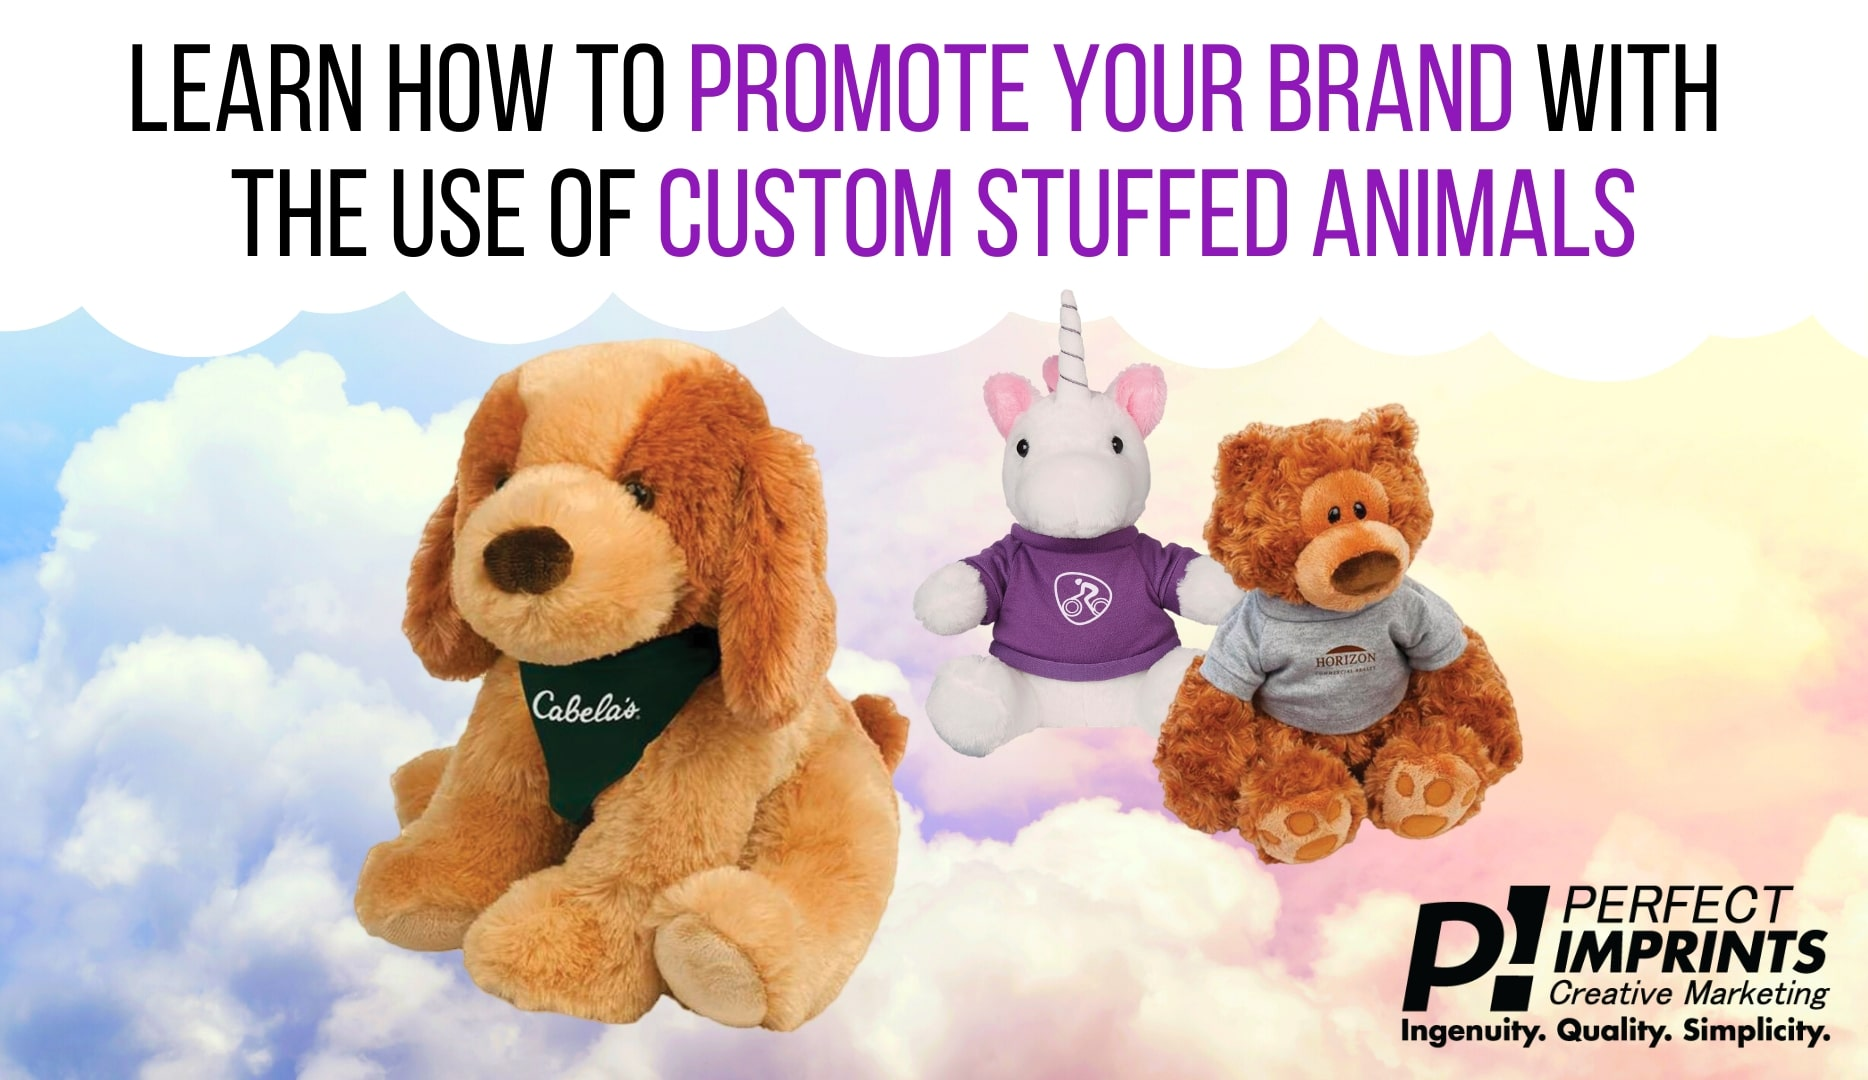 Use Custom Stuffed Animals To Promote Your Brand